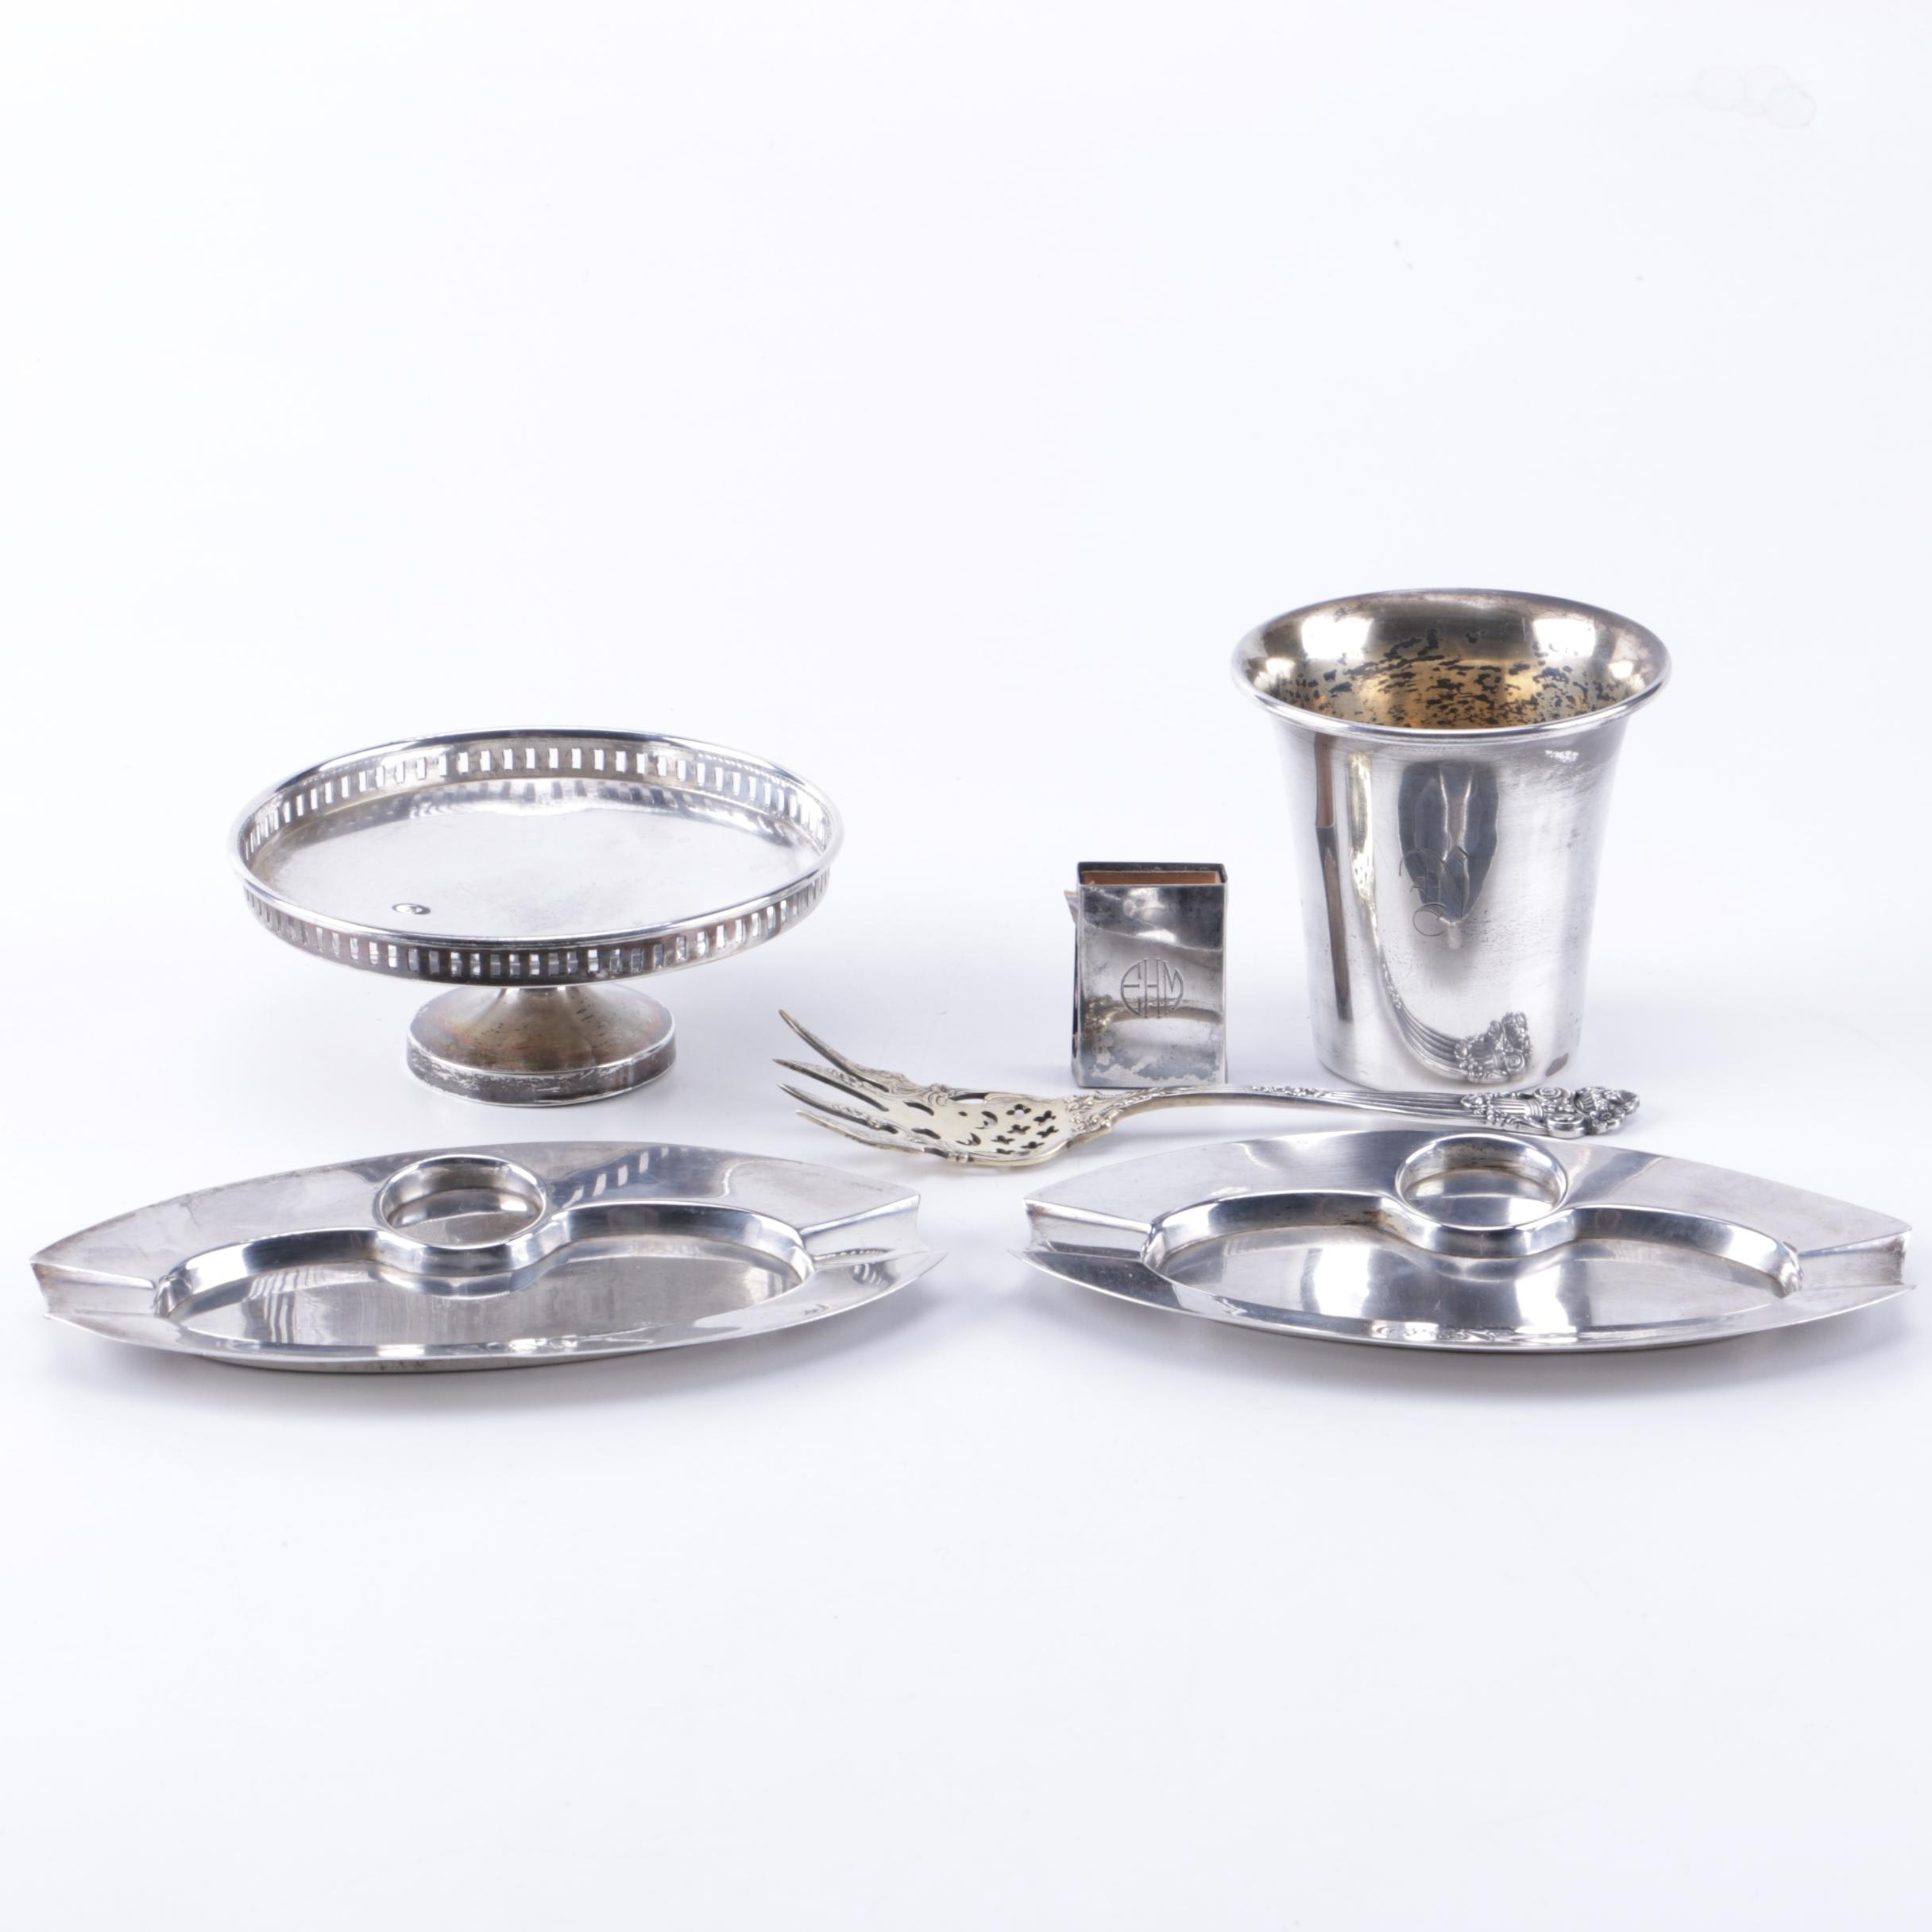 "Towle ""Georgian"" and Other Sterling Silver Tableware"